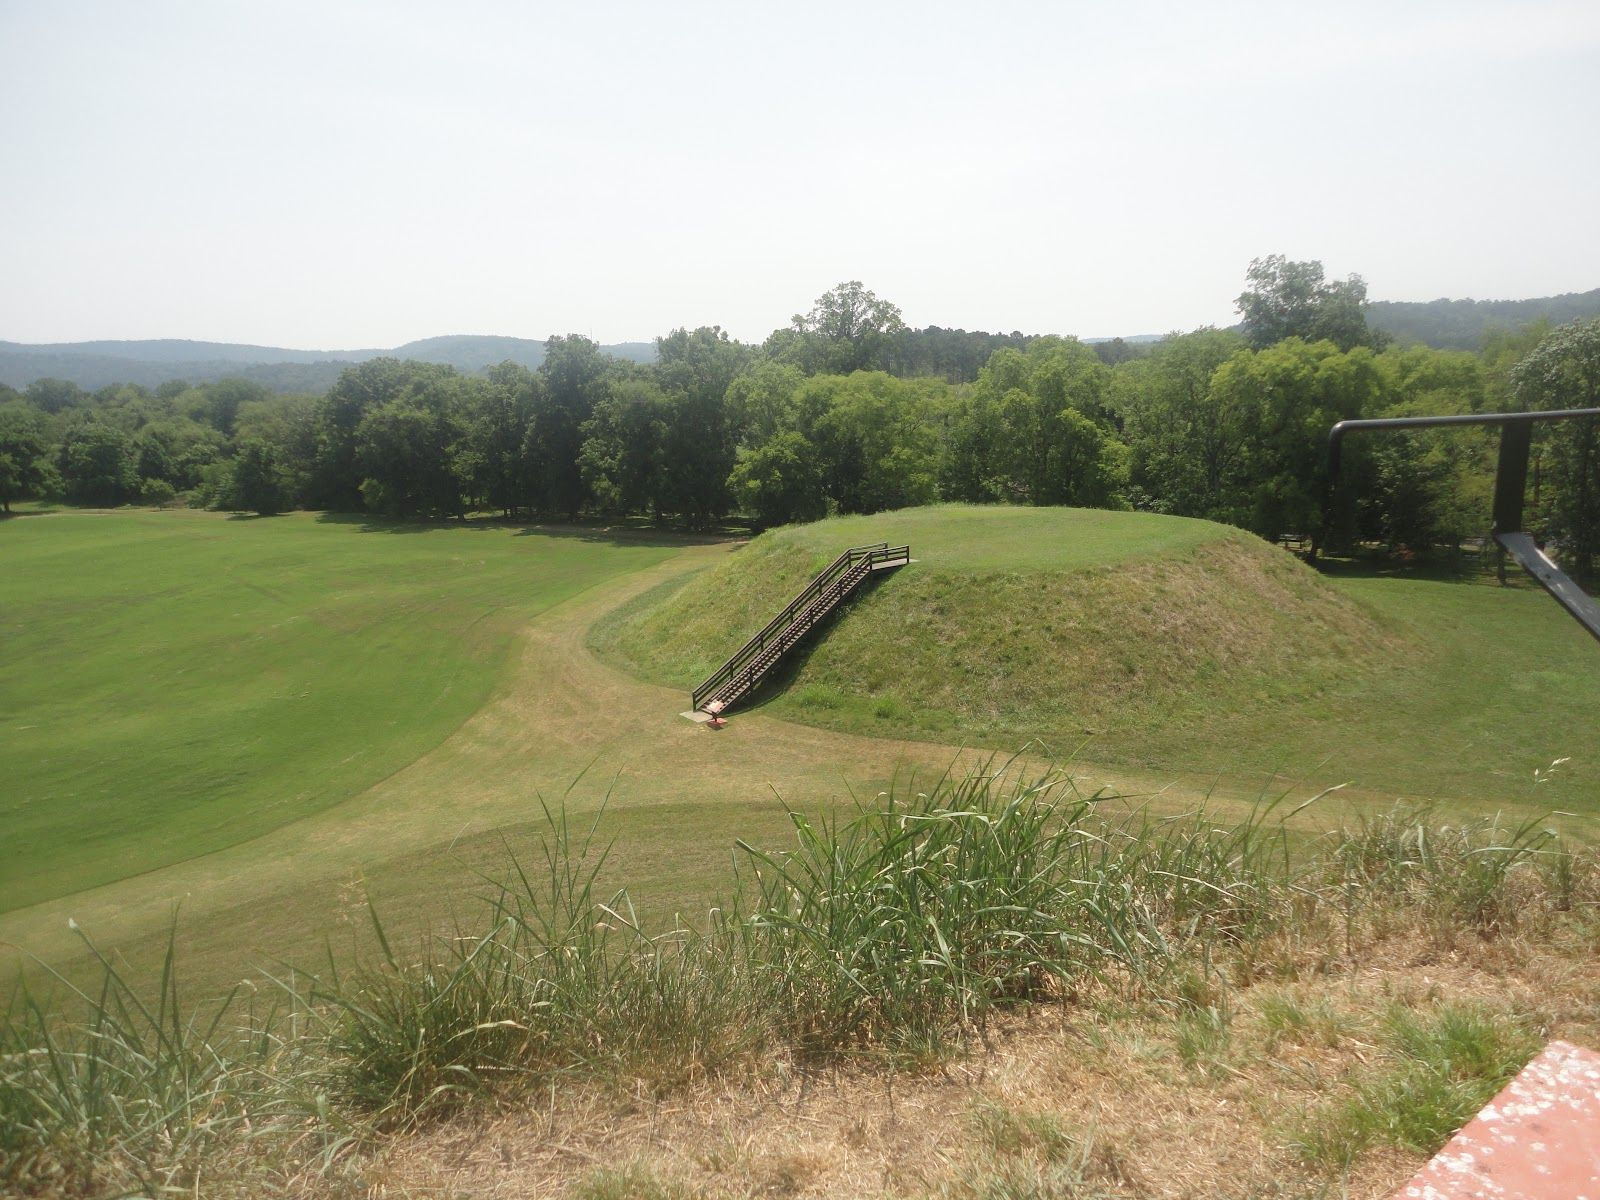 Illinois pulaski county mounds - Etowah Indian Mounds Is An Archaeological Site In Bartow County Georgia It Is The